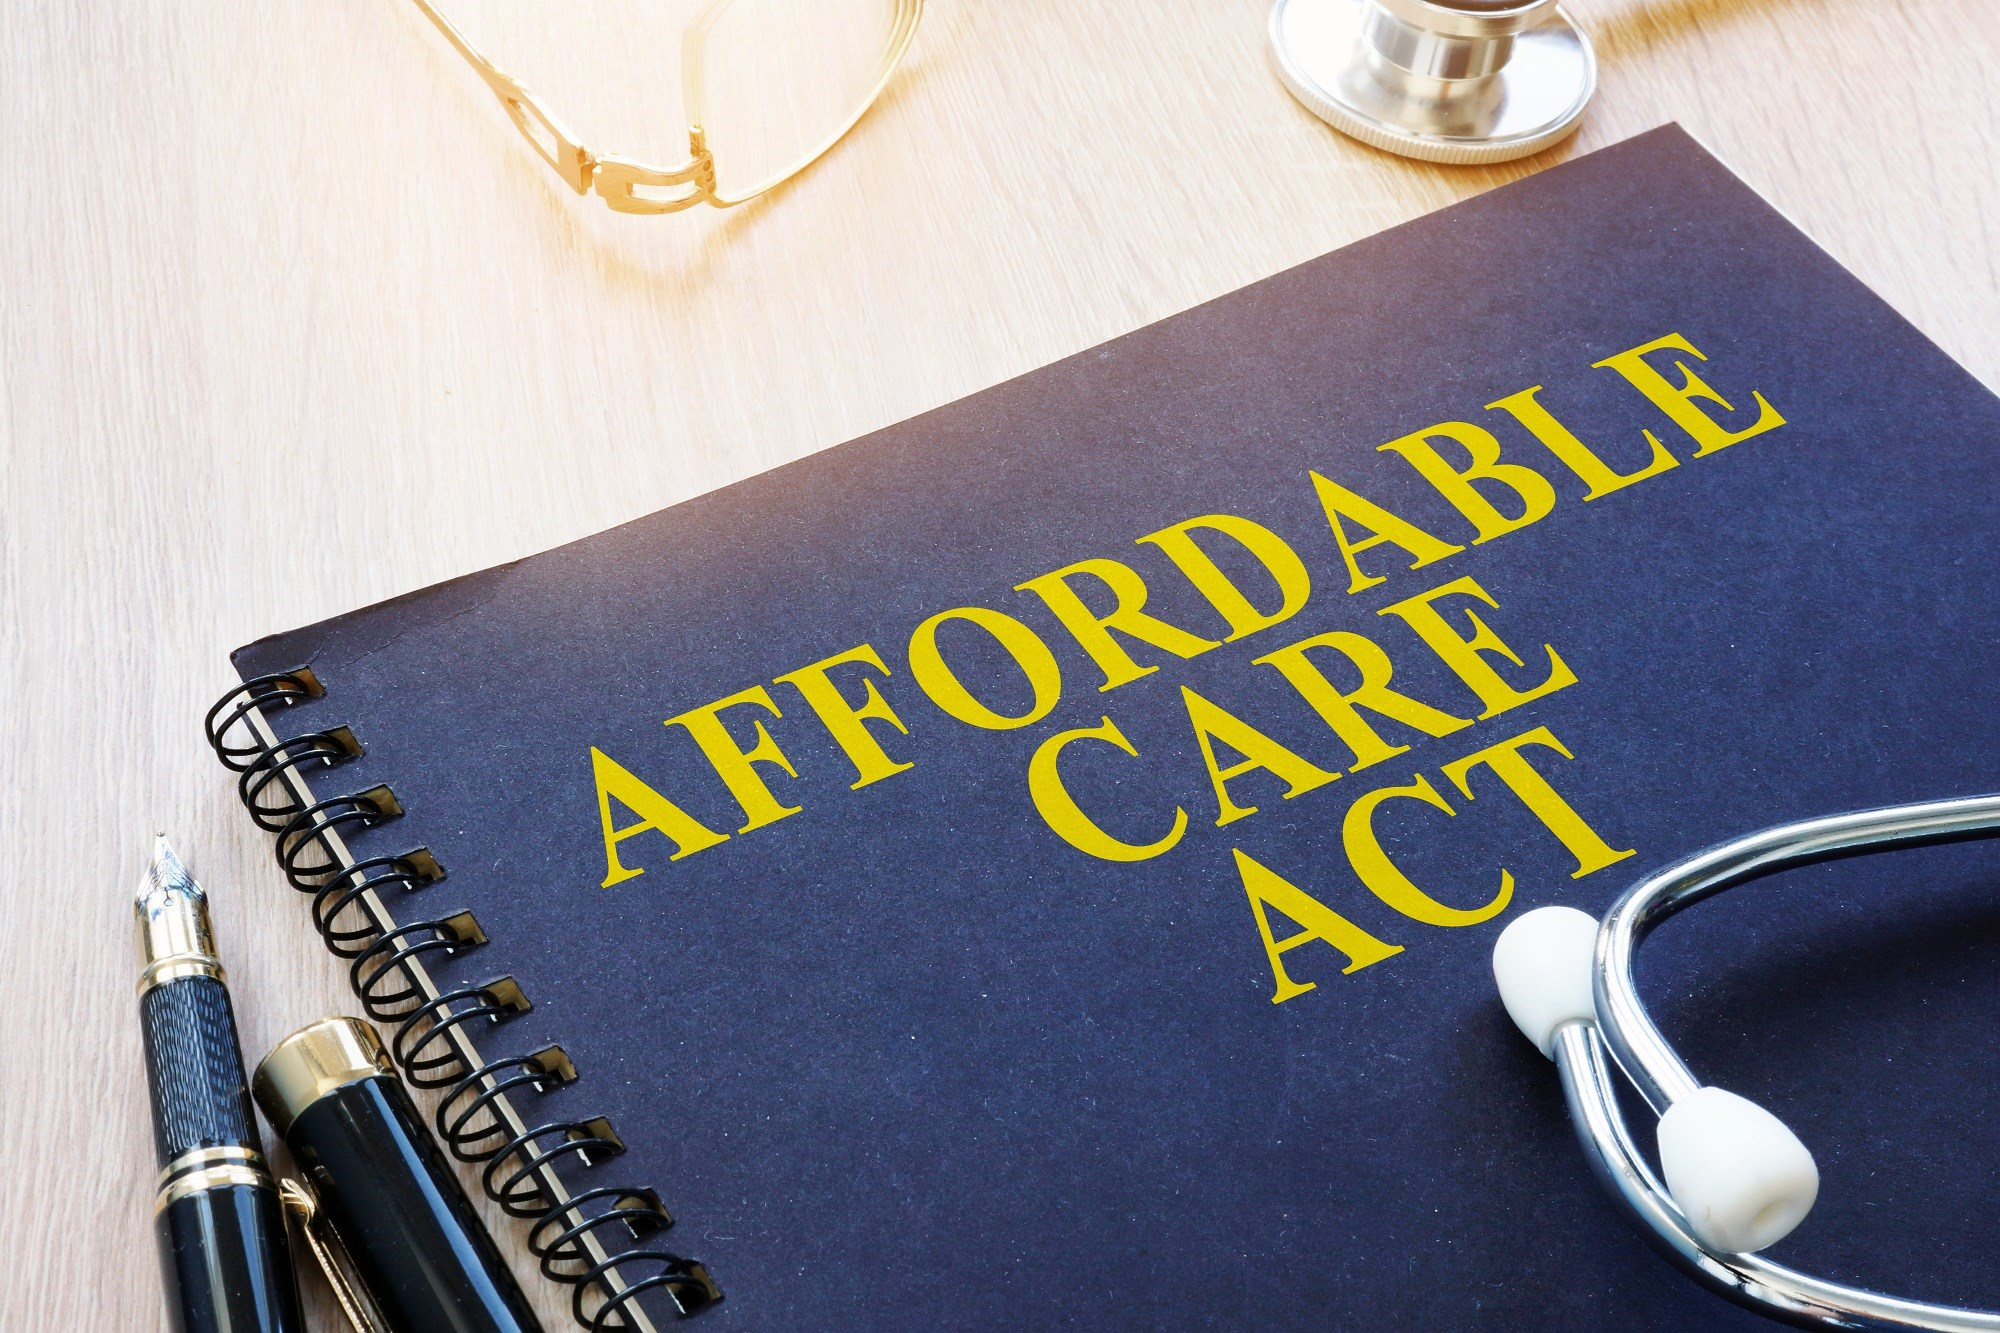 Enrollment Under the Affordable Care Act Down From Last Year